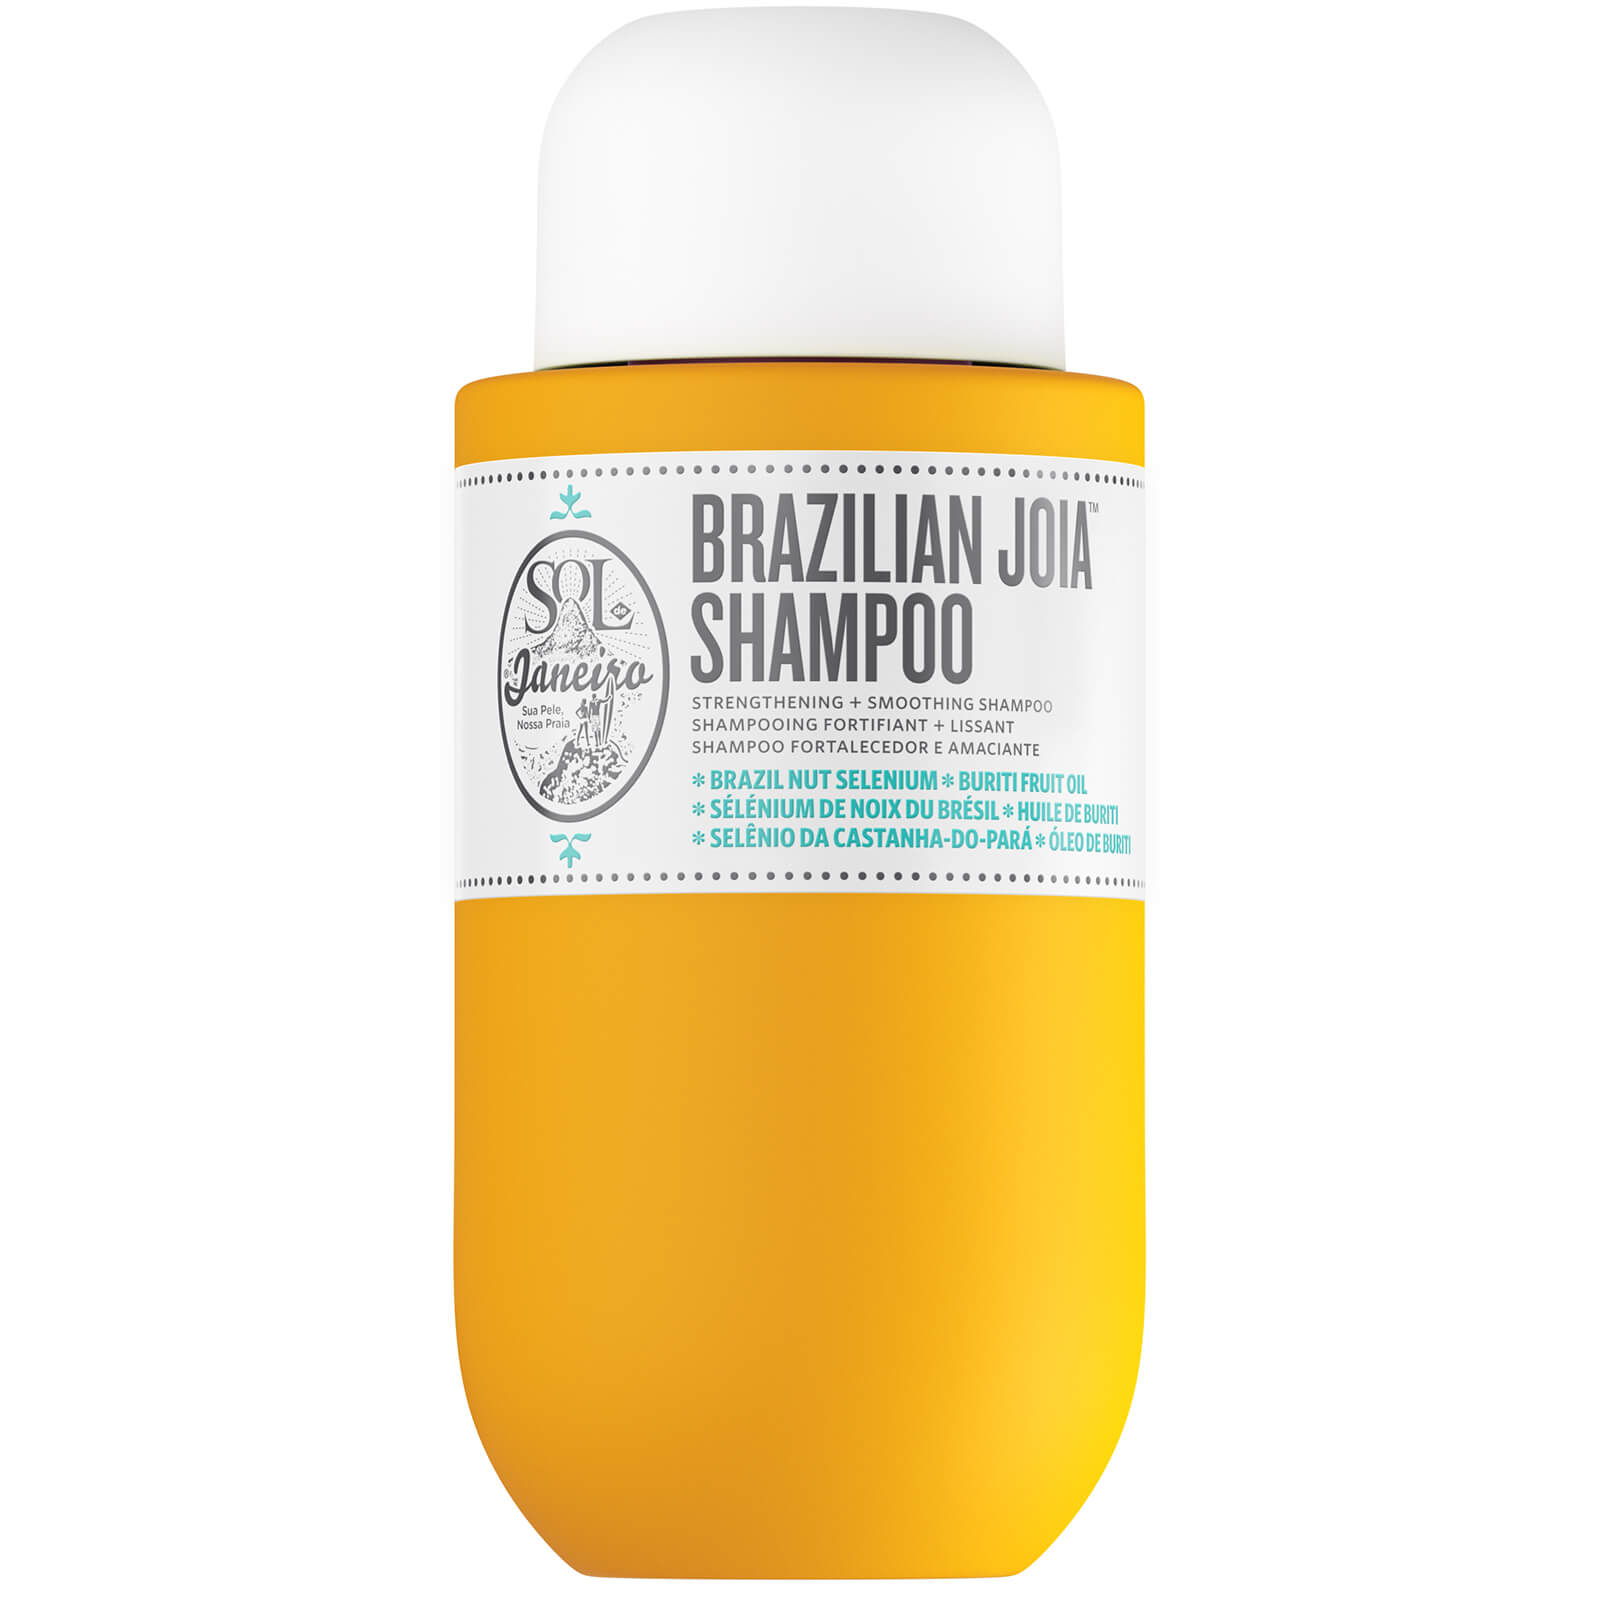 SOL DE JANEIRO Brazilian Joia Strengthening & Smoothing Shampoo 90mL, Hair Care, London Loves Beauty